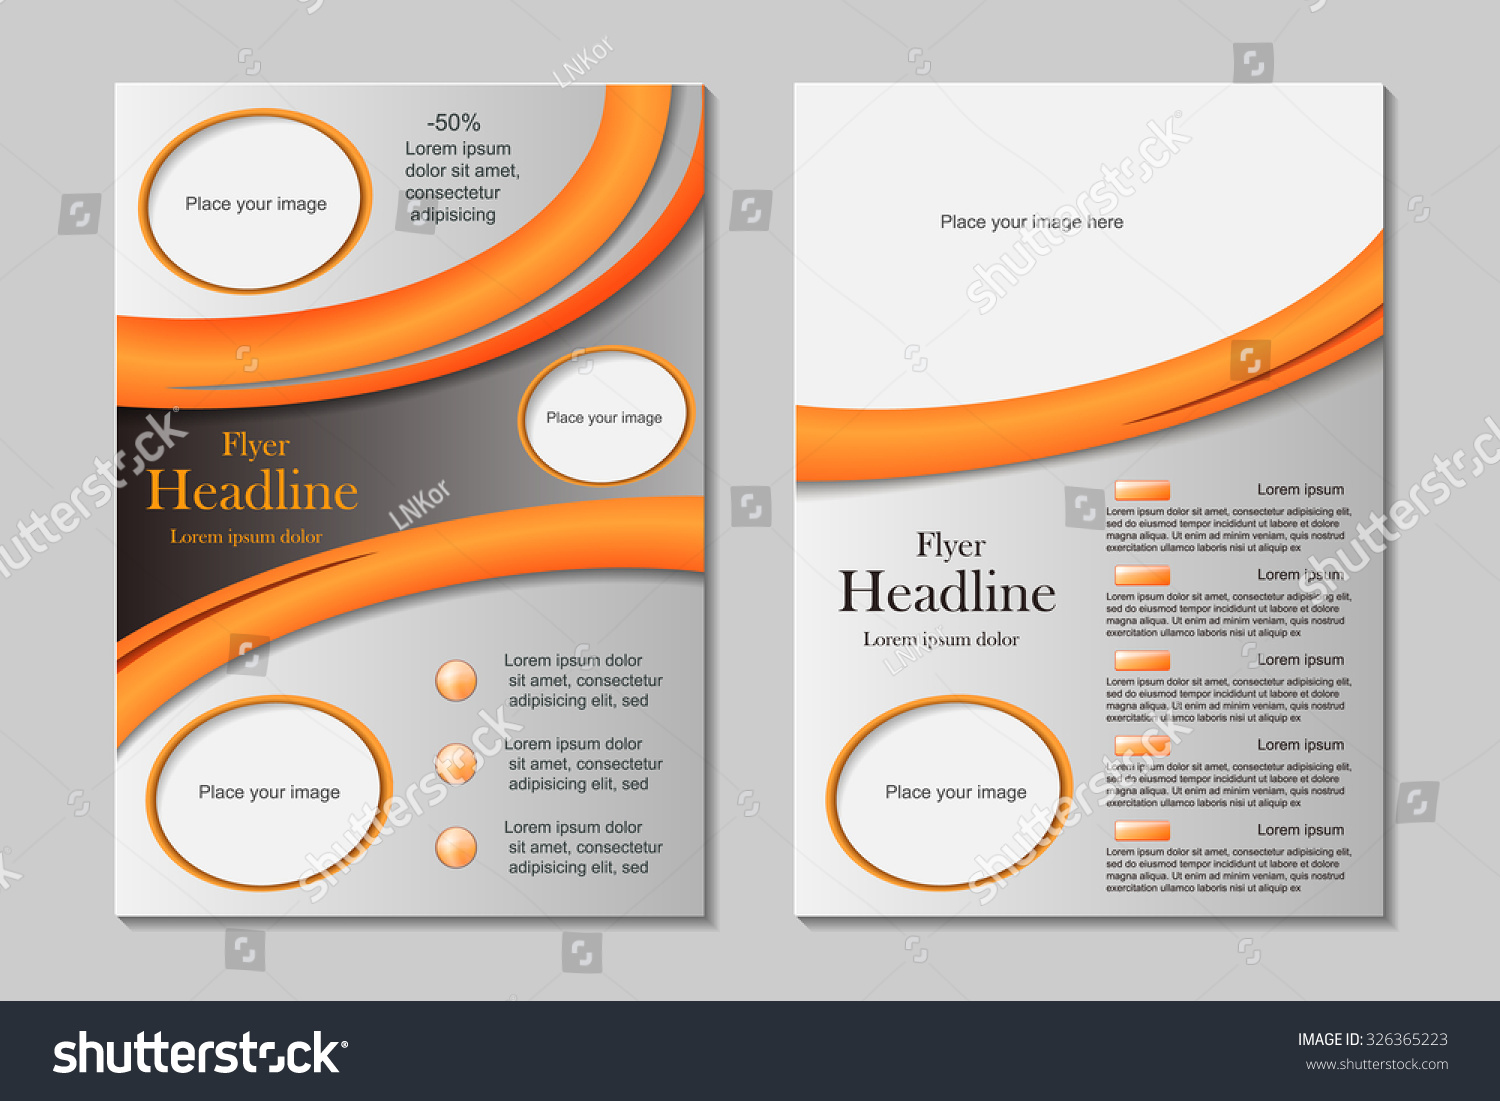 vector flyer template design front page stock vector  vector flyer template design front page and back page business brochure or cover